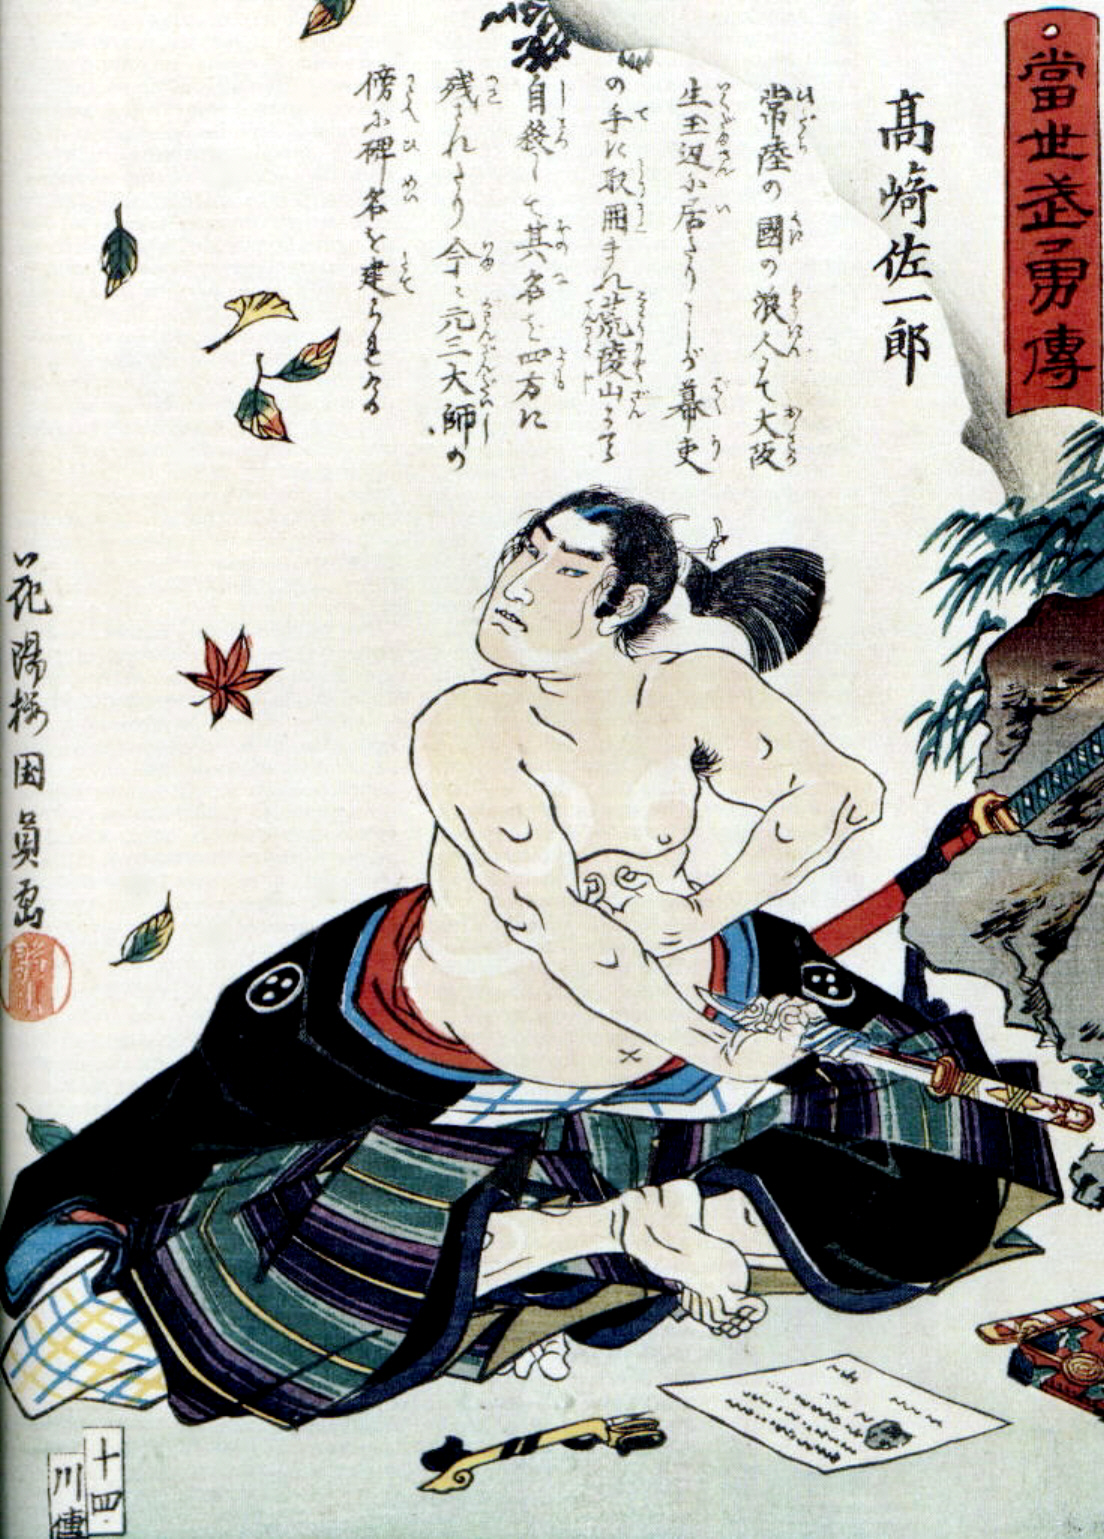 http://upload.wikimedia.org/wikipedia/commons/e/ec/Seppuku-2.jpg